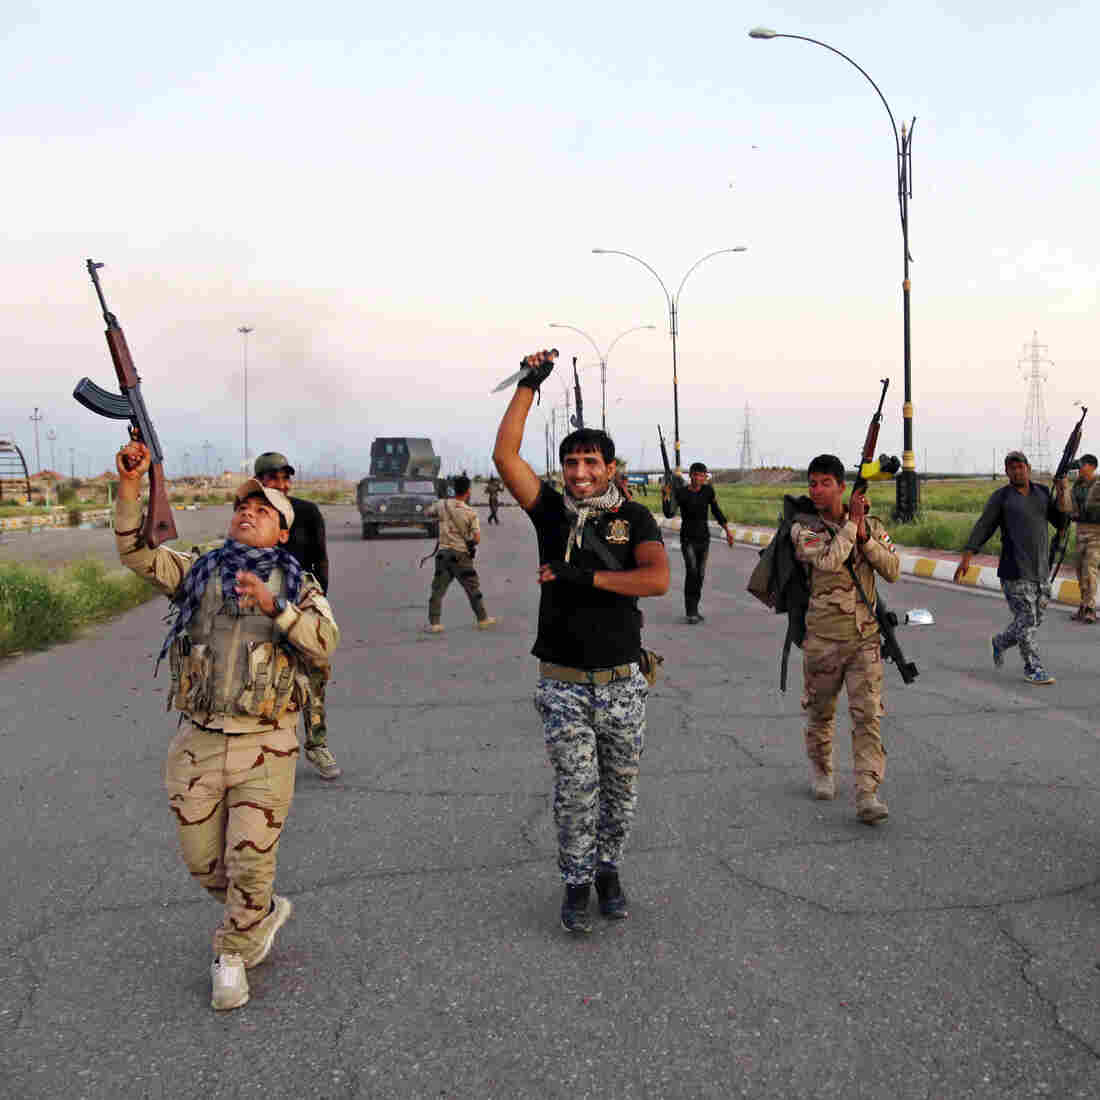 Shiite Militias Move Into A Sunni City: What Happens Next?